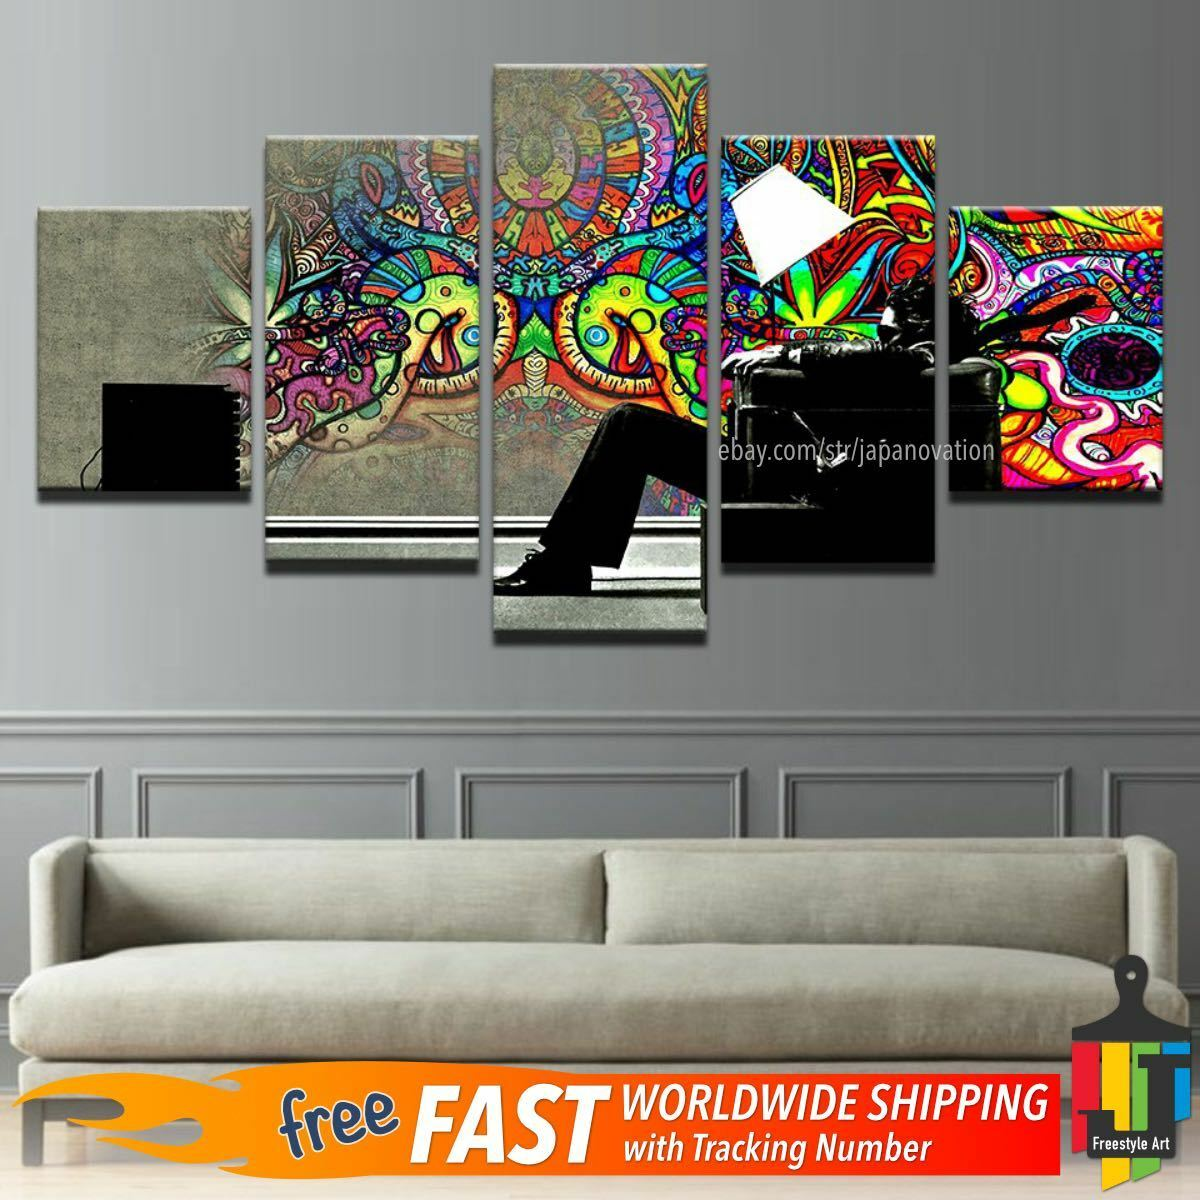 5 Pieces Home Decor Canvas Print Wall Art Psychedelic Abstract Graffiti Painting